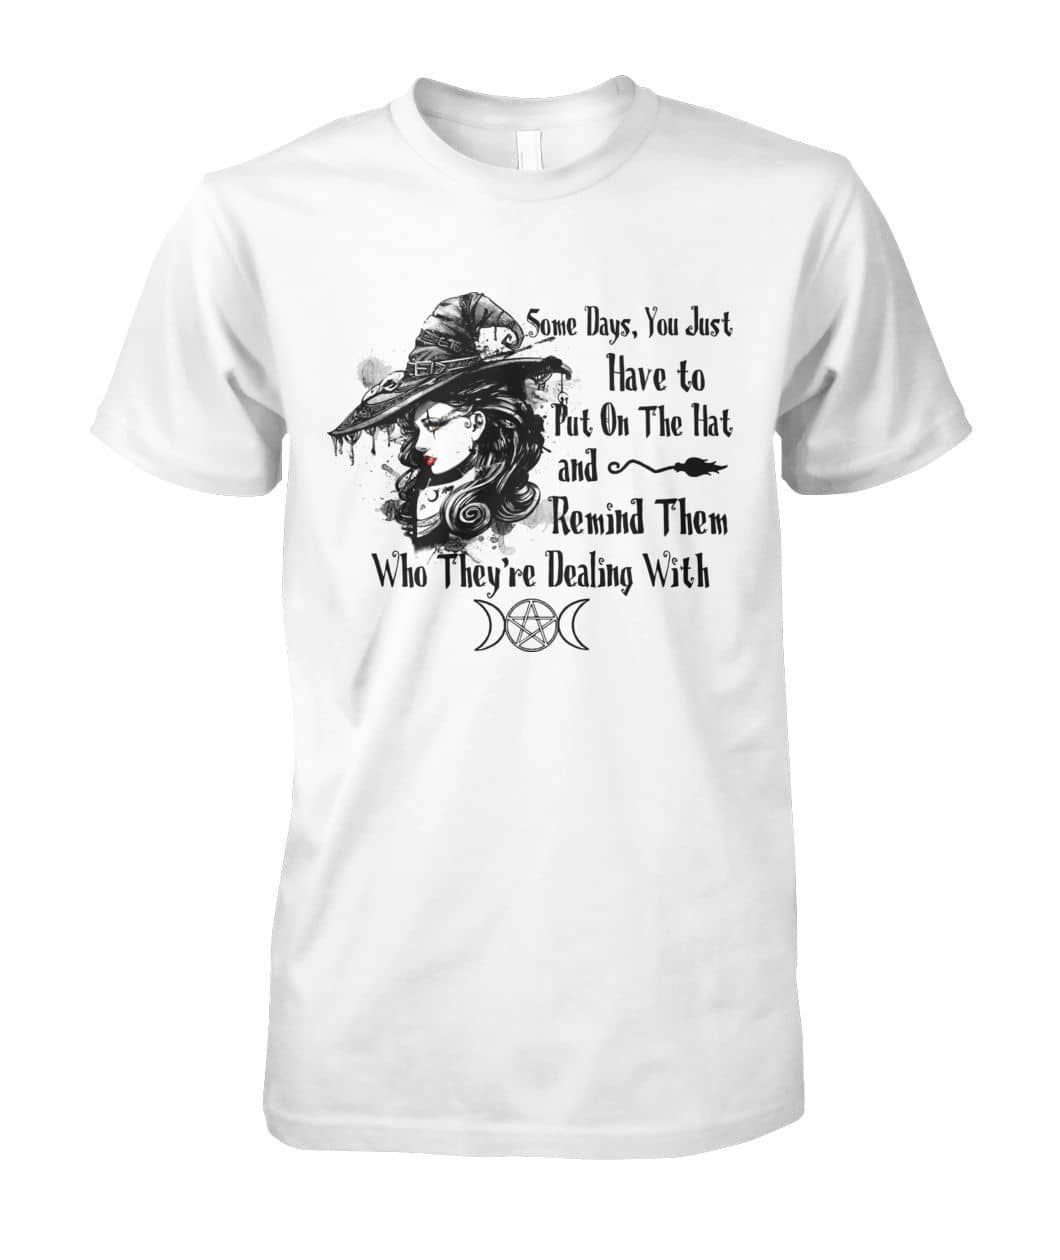 Put On the Hat and Remind Them Shirt